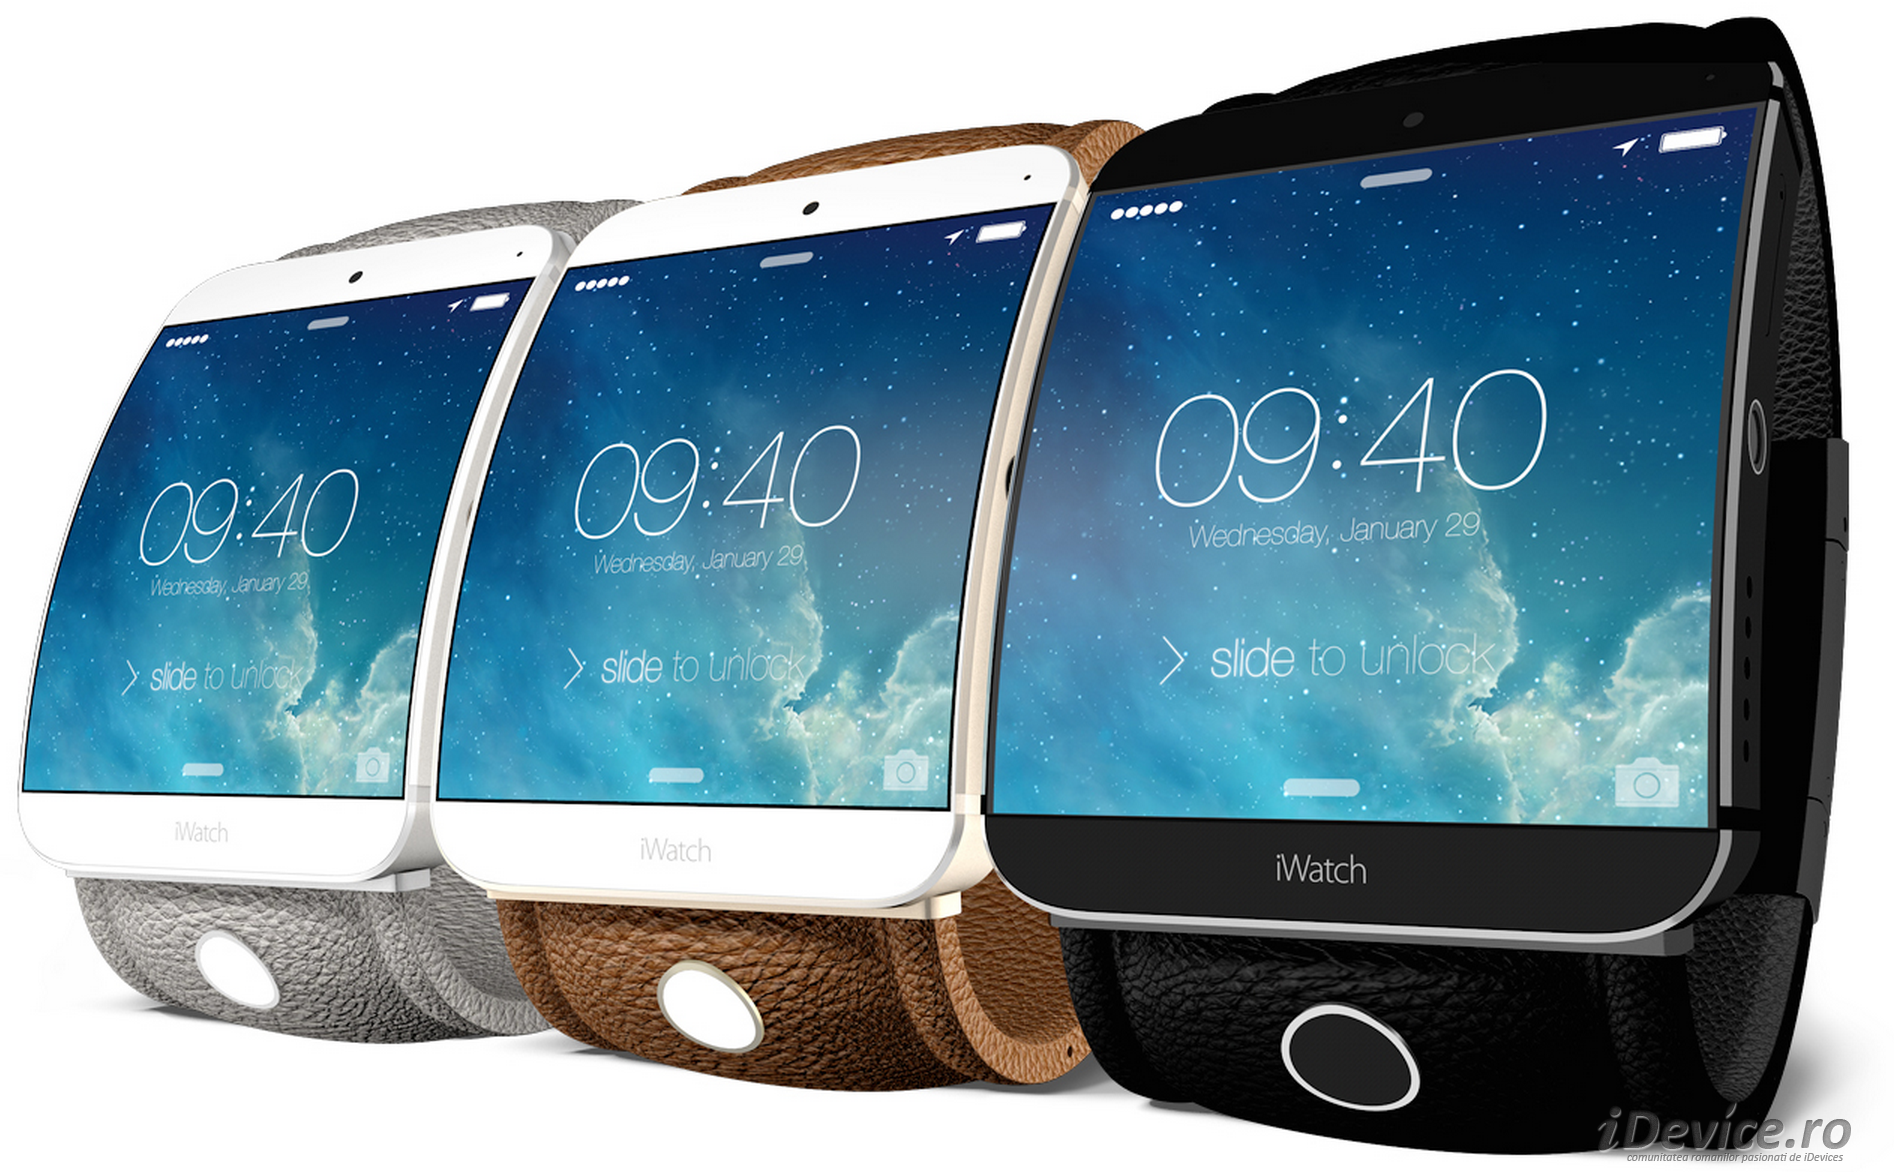 iWatch concept paste - iDevice.ro 6